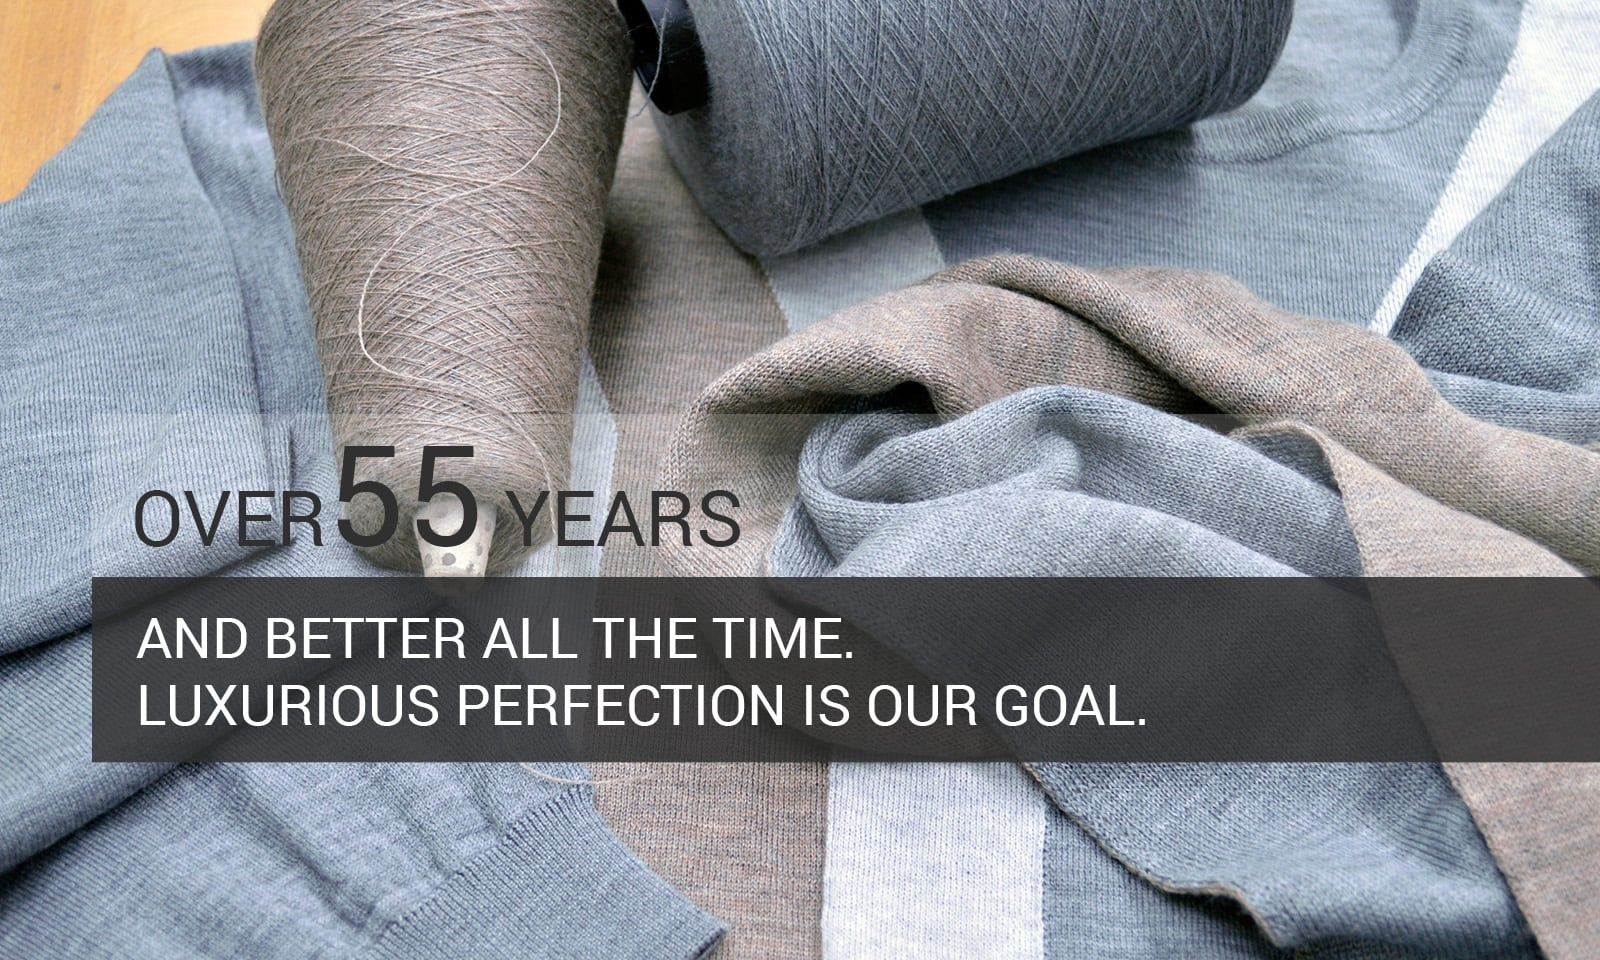 Over 55 Years - Better all the time - Luxurious Perfection is our goal